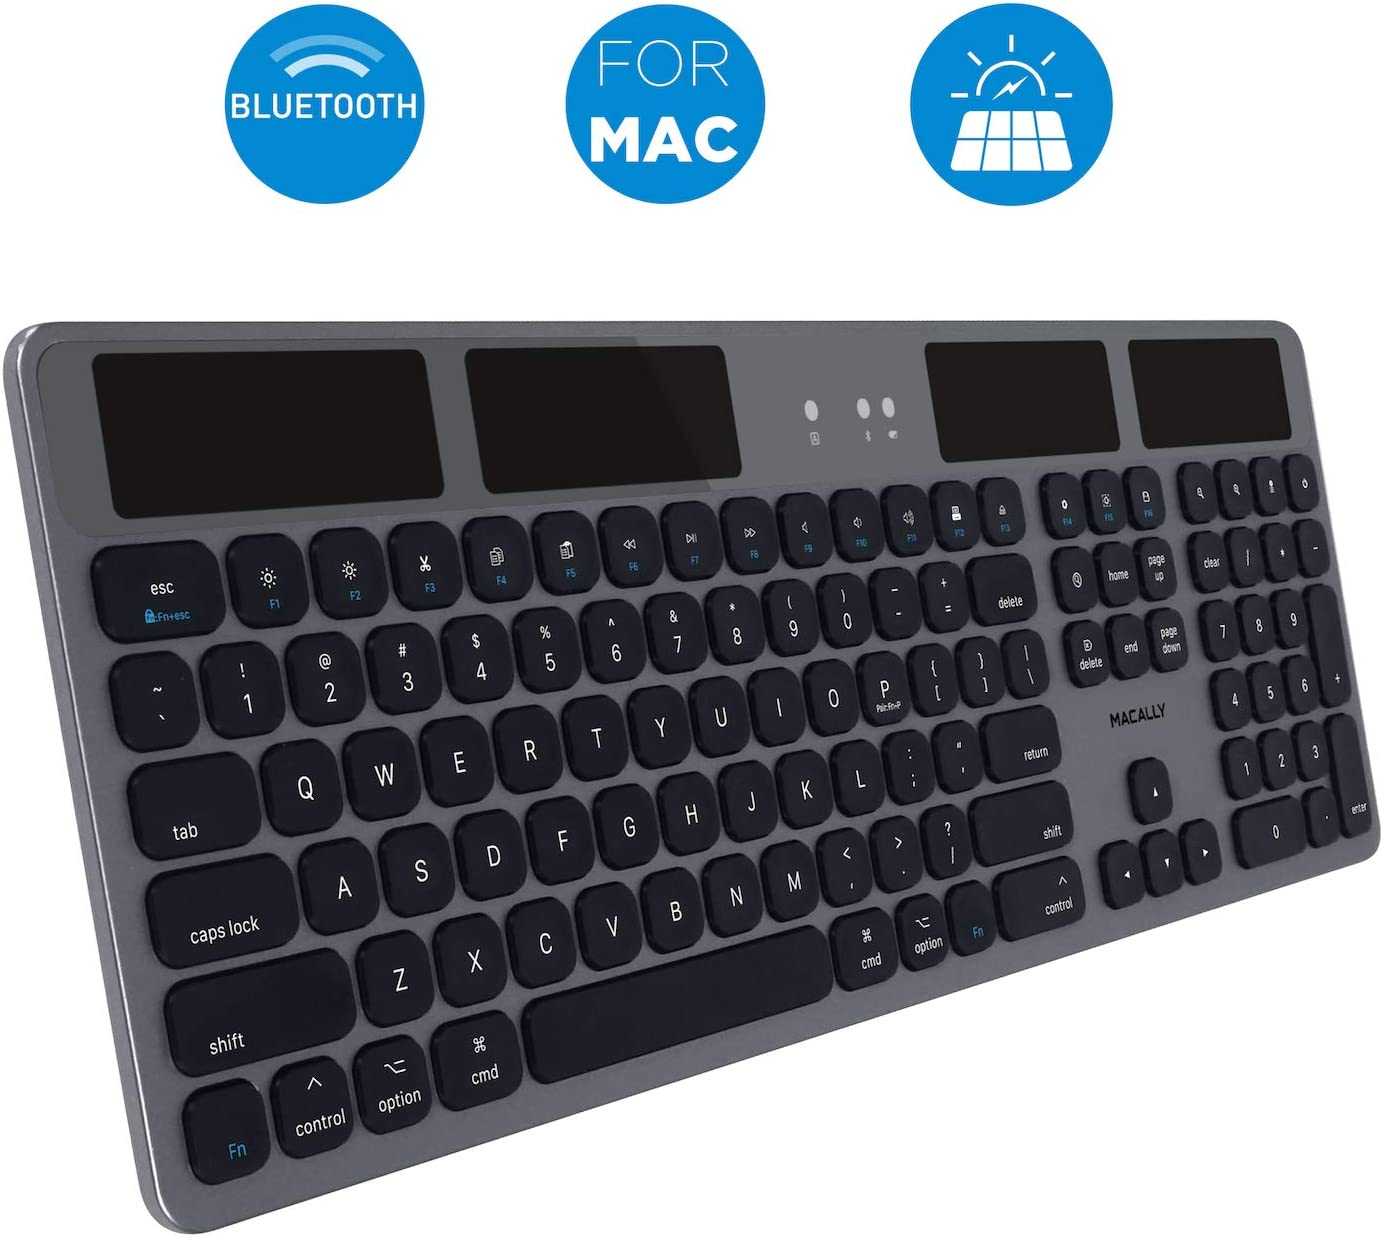 Macally Bluetooth Wireless Solar Keyboard for Mac - Rechargeable via Any Light Source (150 hr Battery Life) - Solar Powered Mac Bluetooth Keyboard with Numeric Keypad & 21 Apple Shortcuts - Space Gray